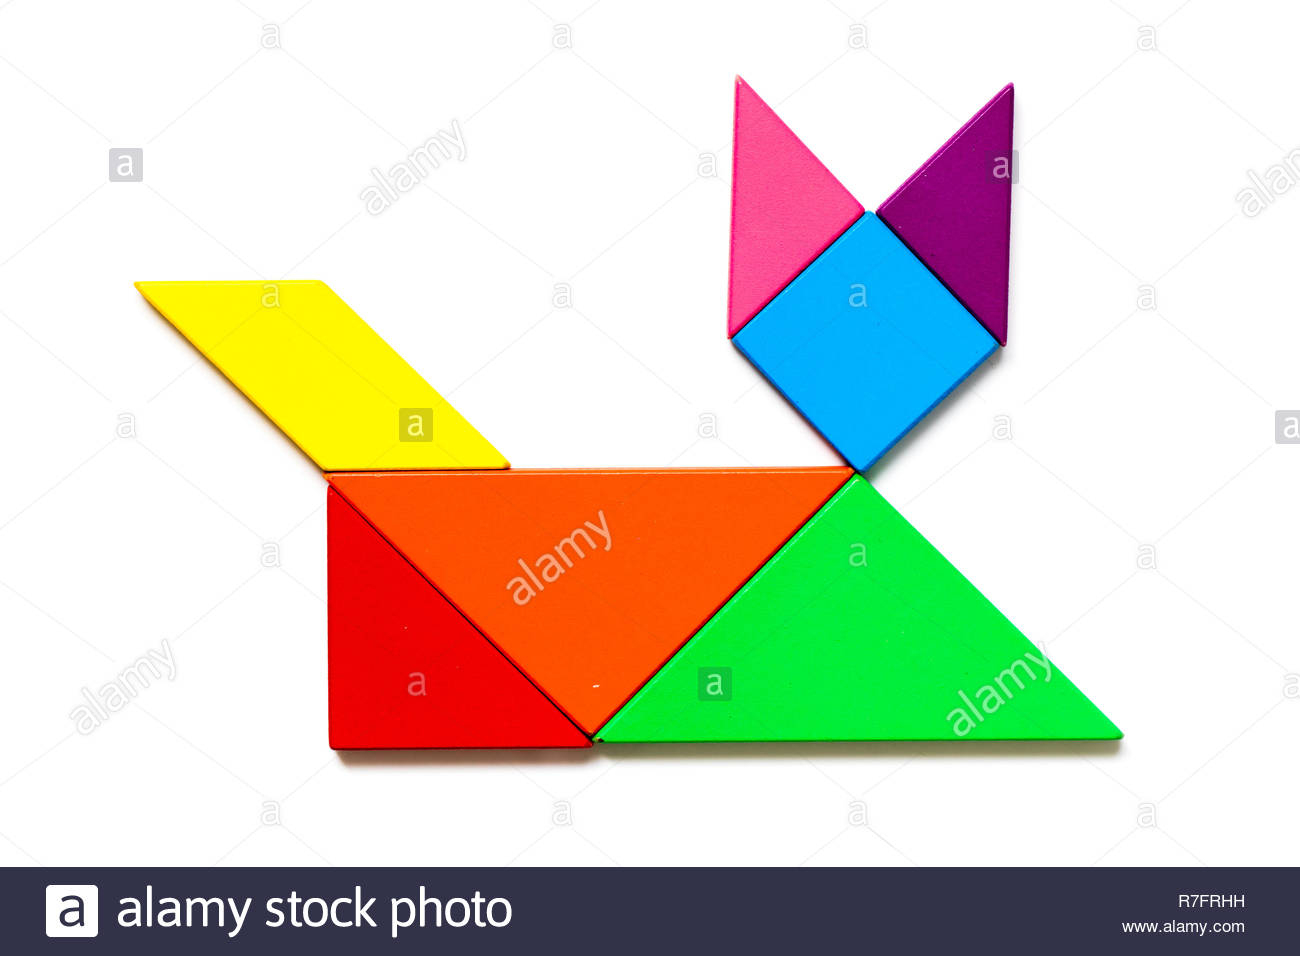 Tangram Puzzle Cut Out Stock Images & Pictures - Alamy avec Tangram Simple